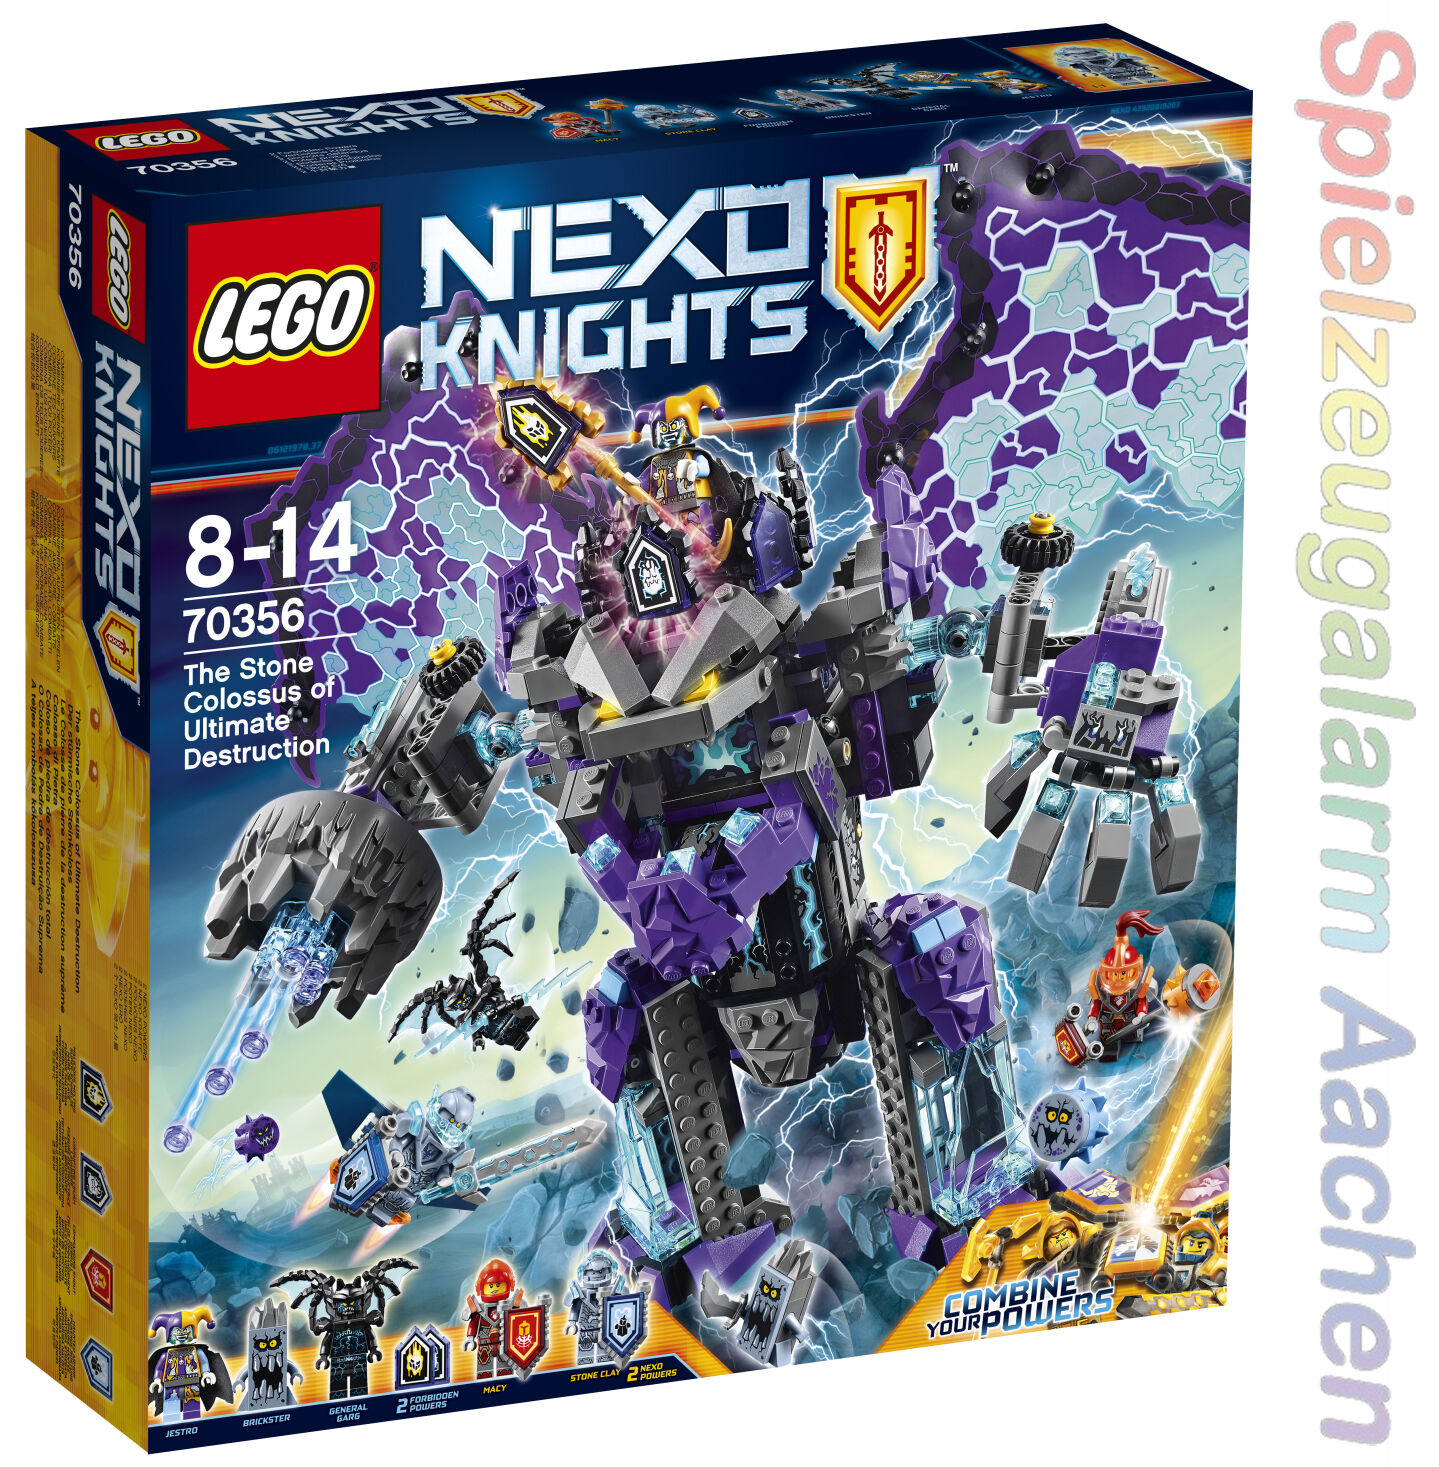 Lego 70356 Nexo Knights  of stormy Stone Colossus jestro General Garg n6 17  haute qualité